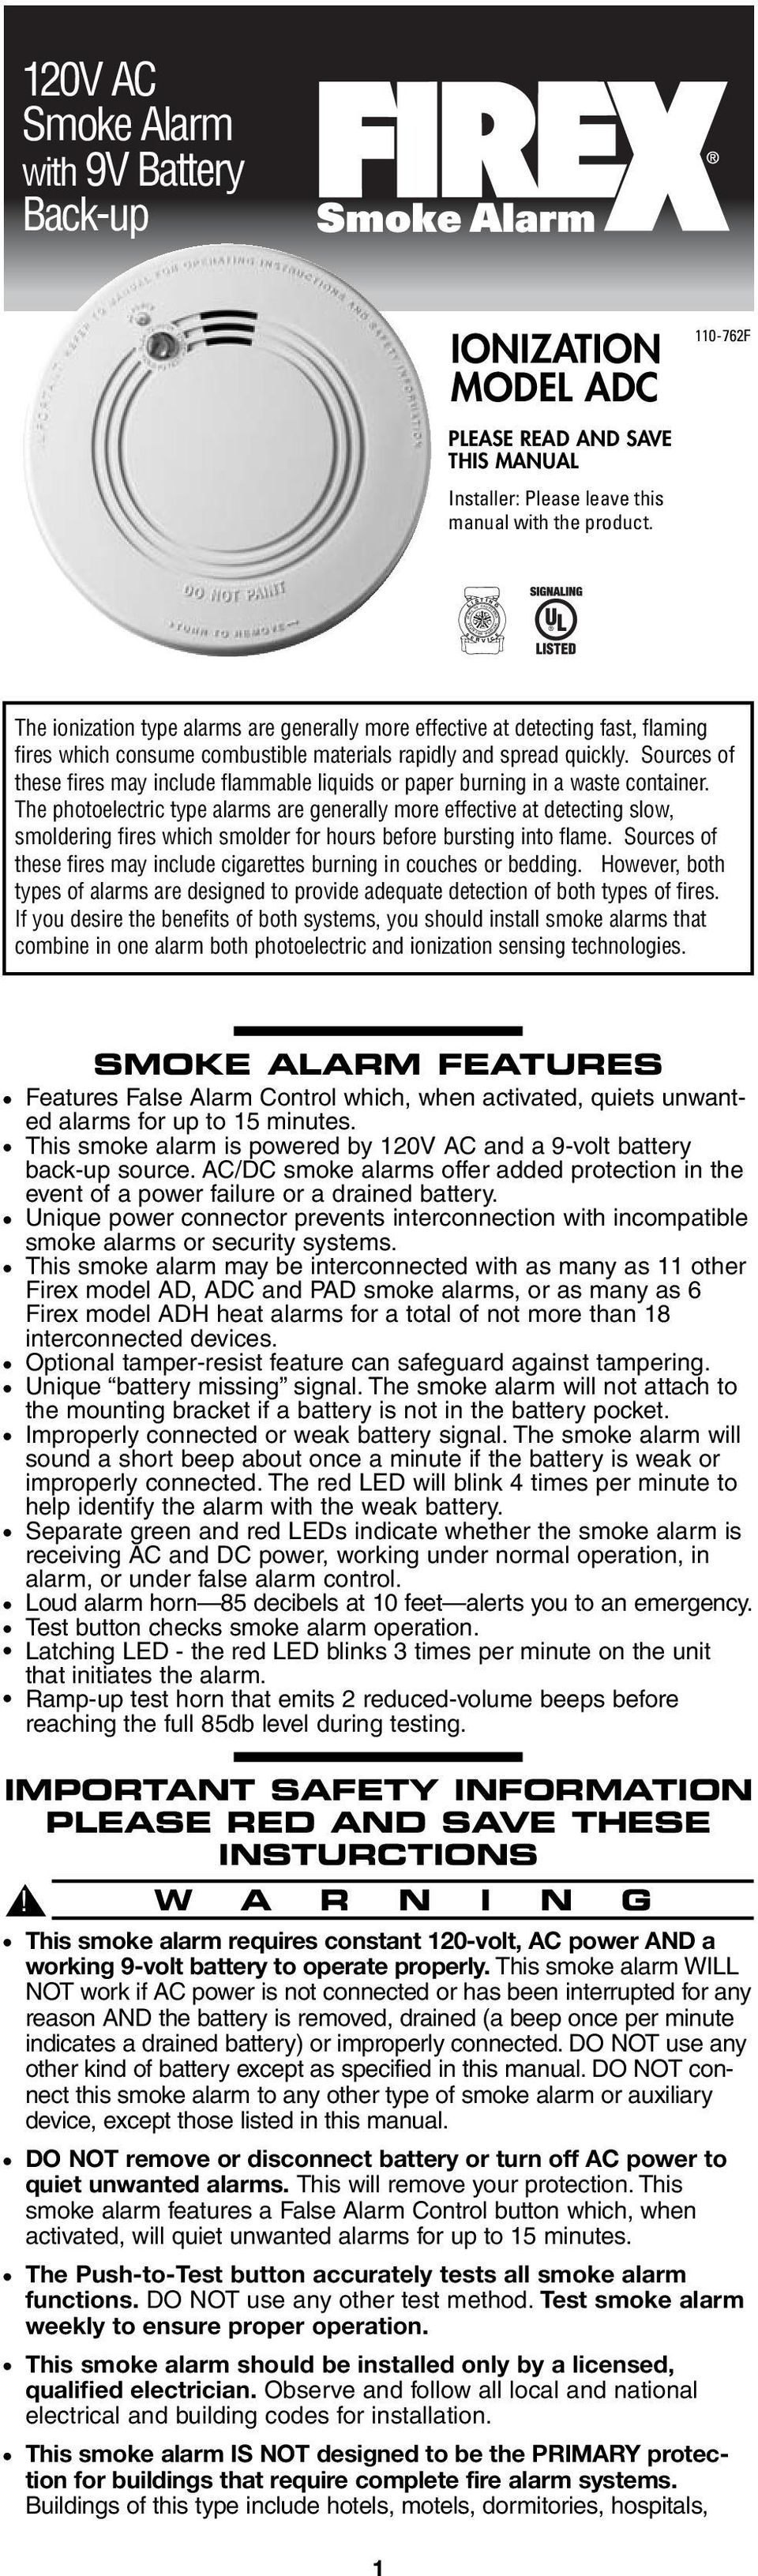 120v Ac Smoke Alarm With 9v Battery Back Up Ionization Model Adc Pdf Wireless Sensor Replacement Instructions For Safewatch And Spread Quickly Sources Of These Fires May Include Flammable Liquids Or Paper Burning In